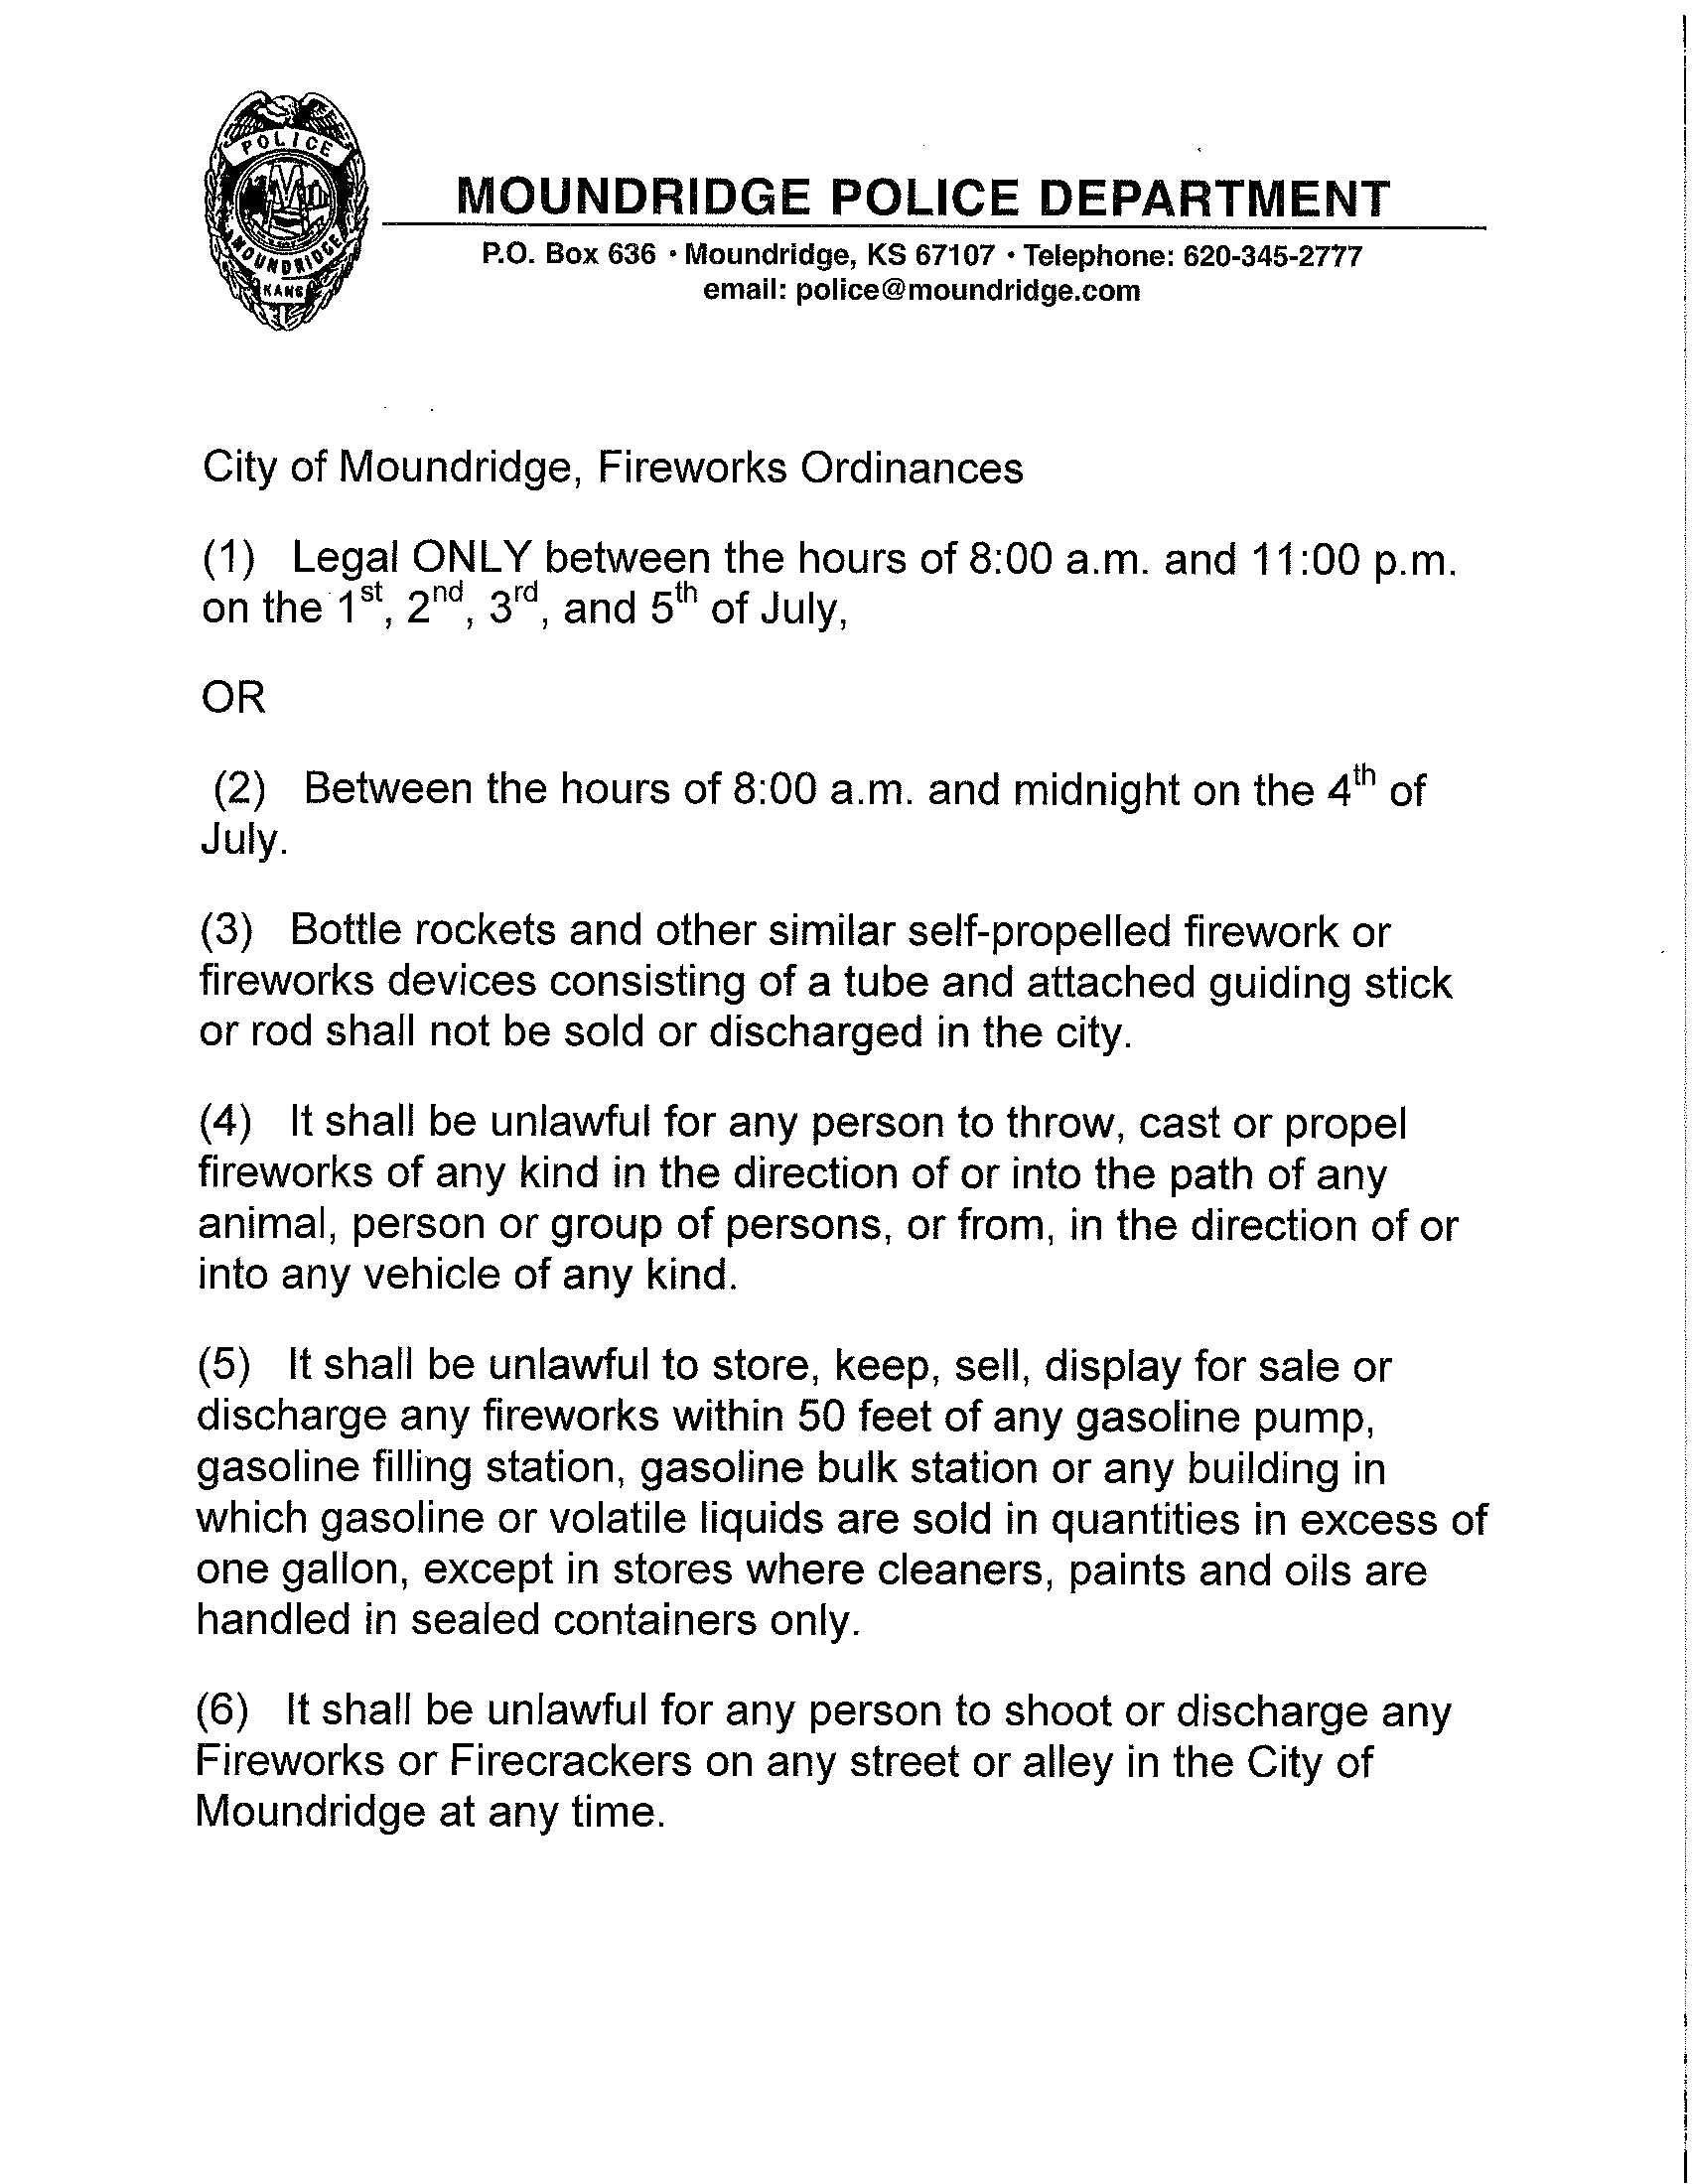 fireworks ordinance (1)